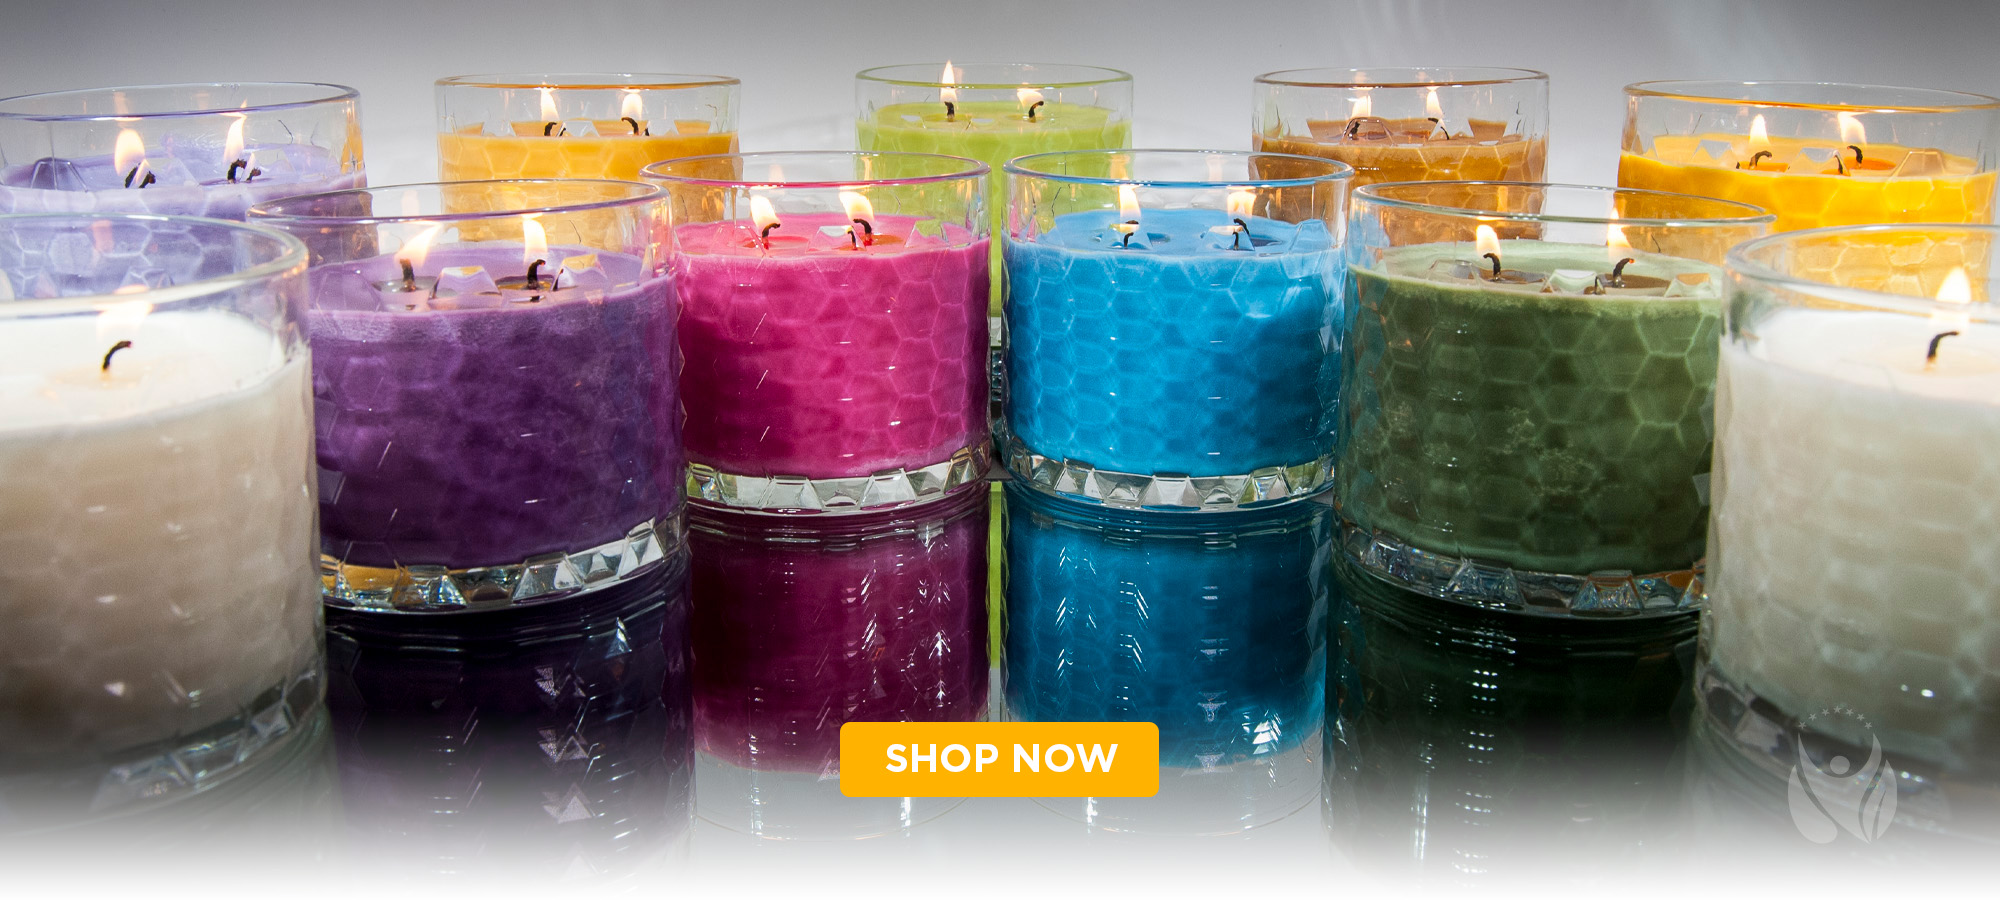 /store/ritzalife/c/175_205/experience/19oz-cylinder-candles/